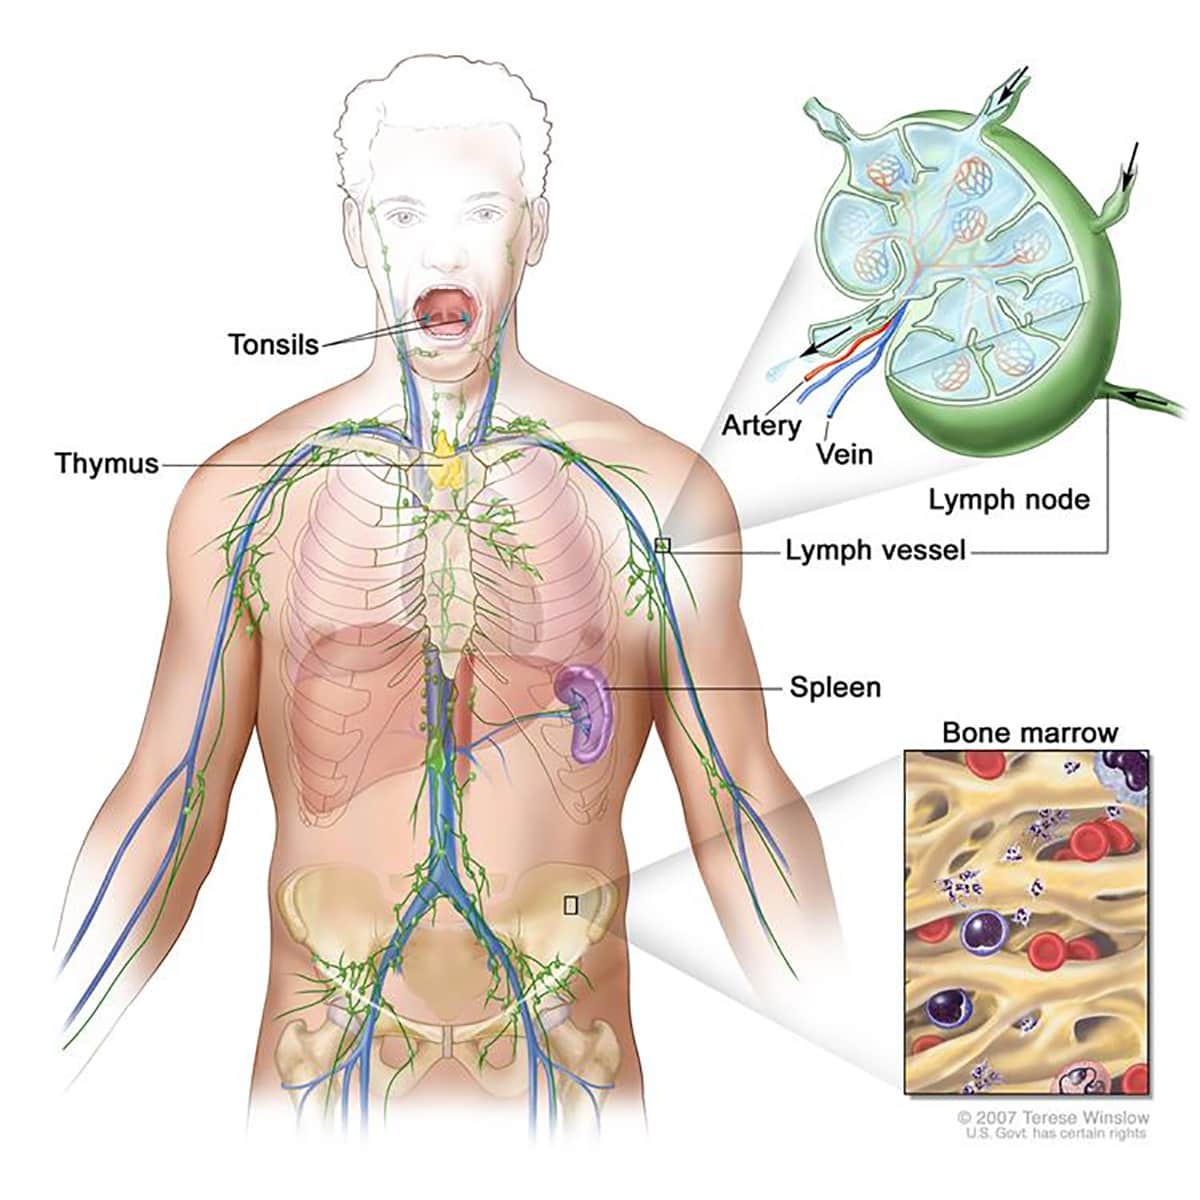 illustration of a lymphatic system